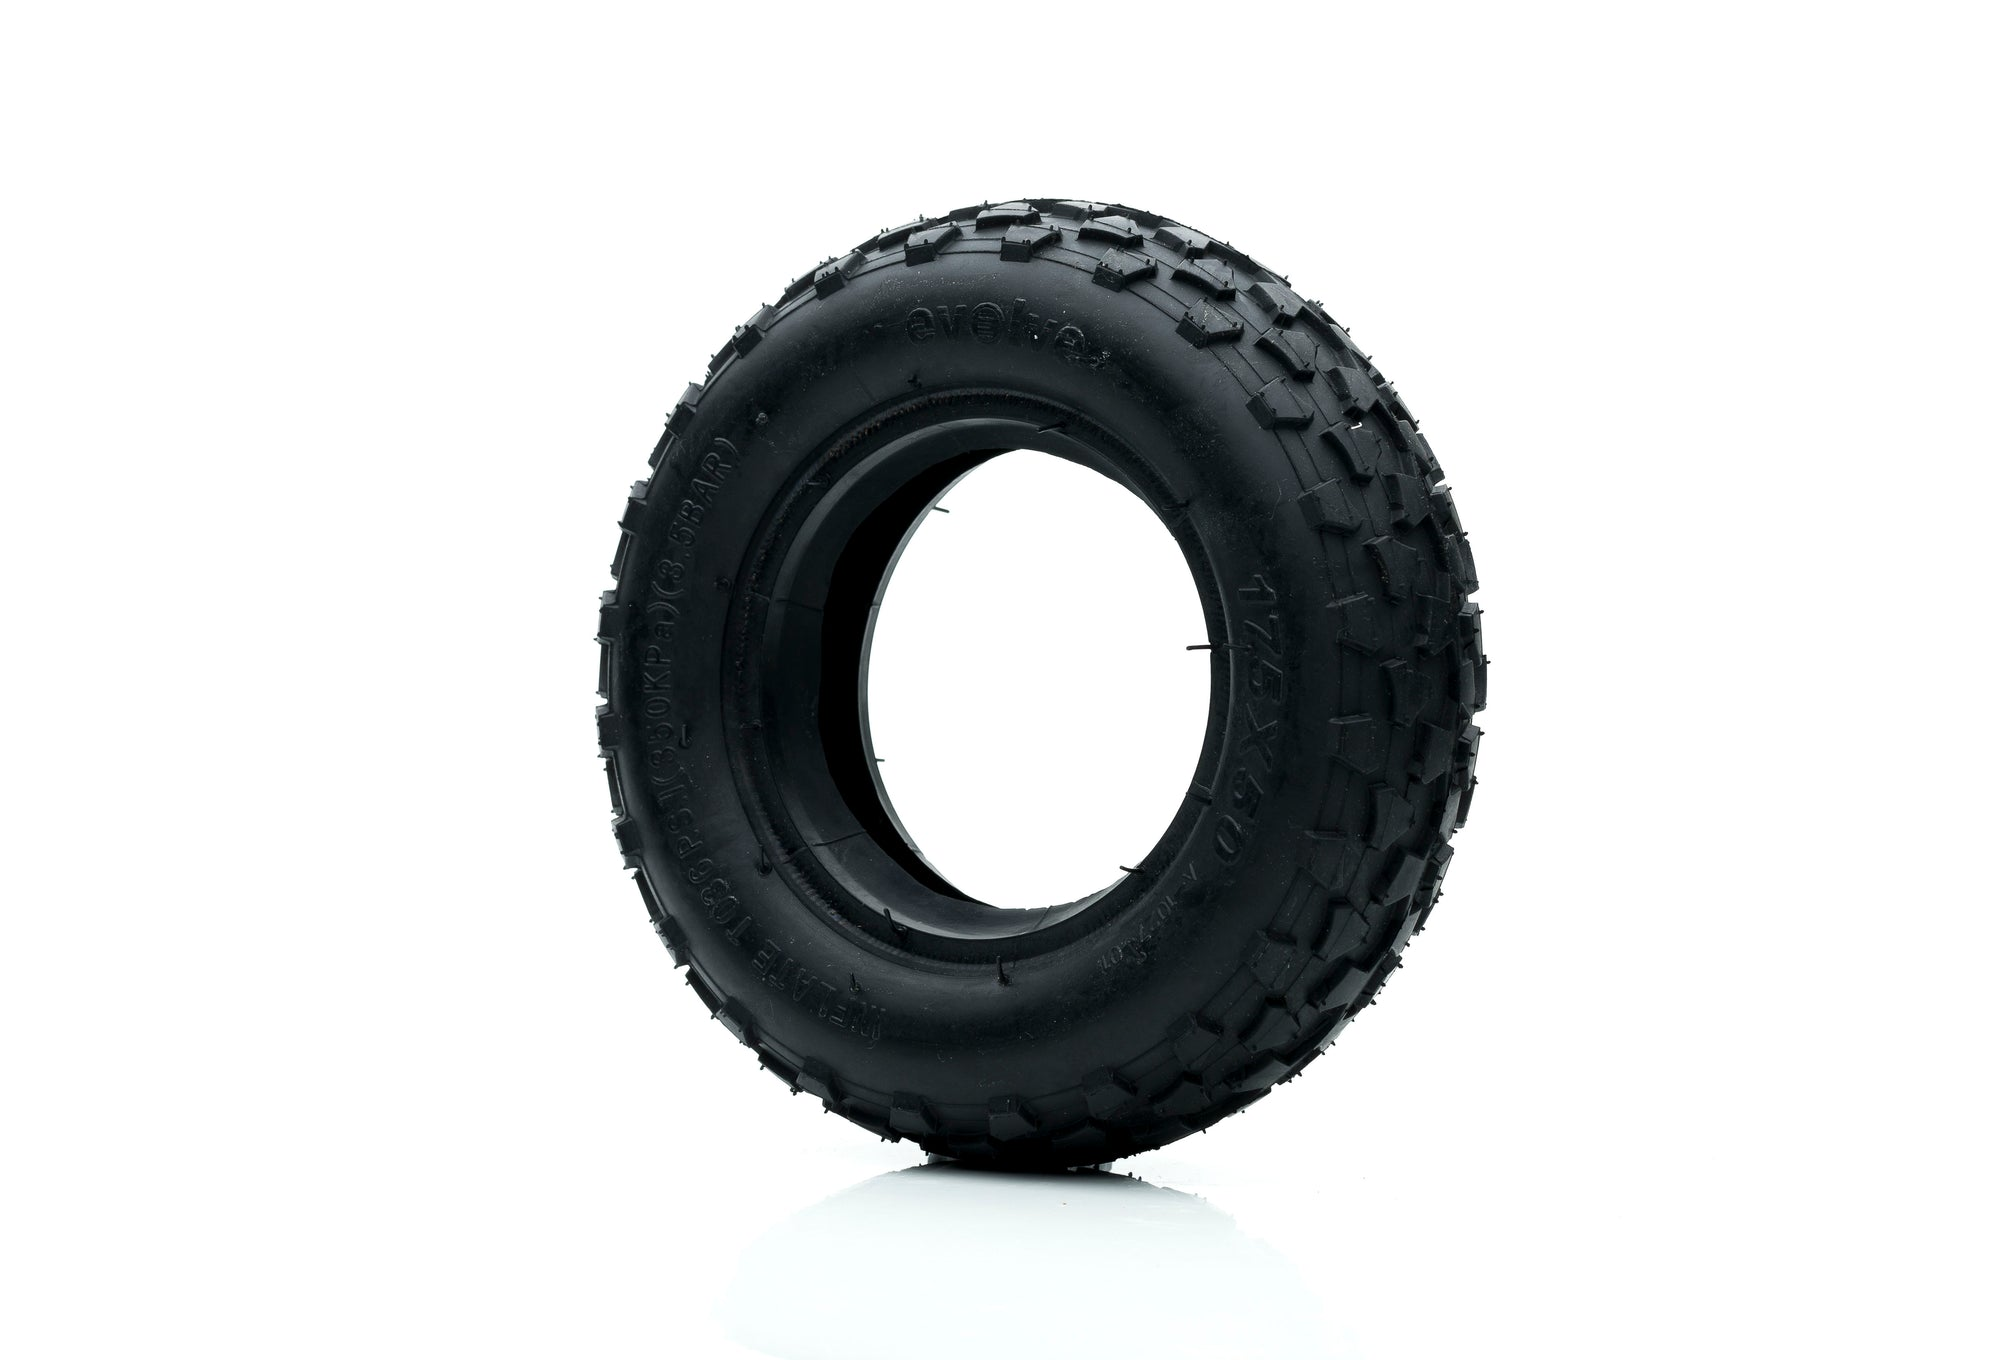 "Set Ruedas Off Road 7"" (Con Calugas) NEGRAS"